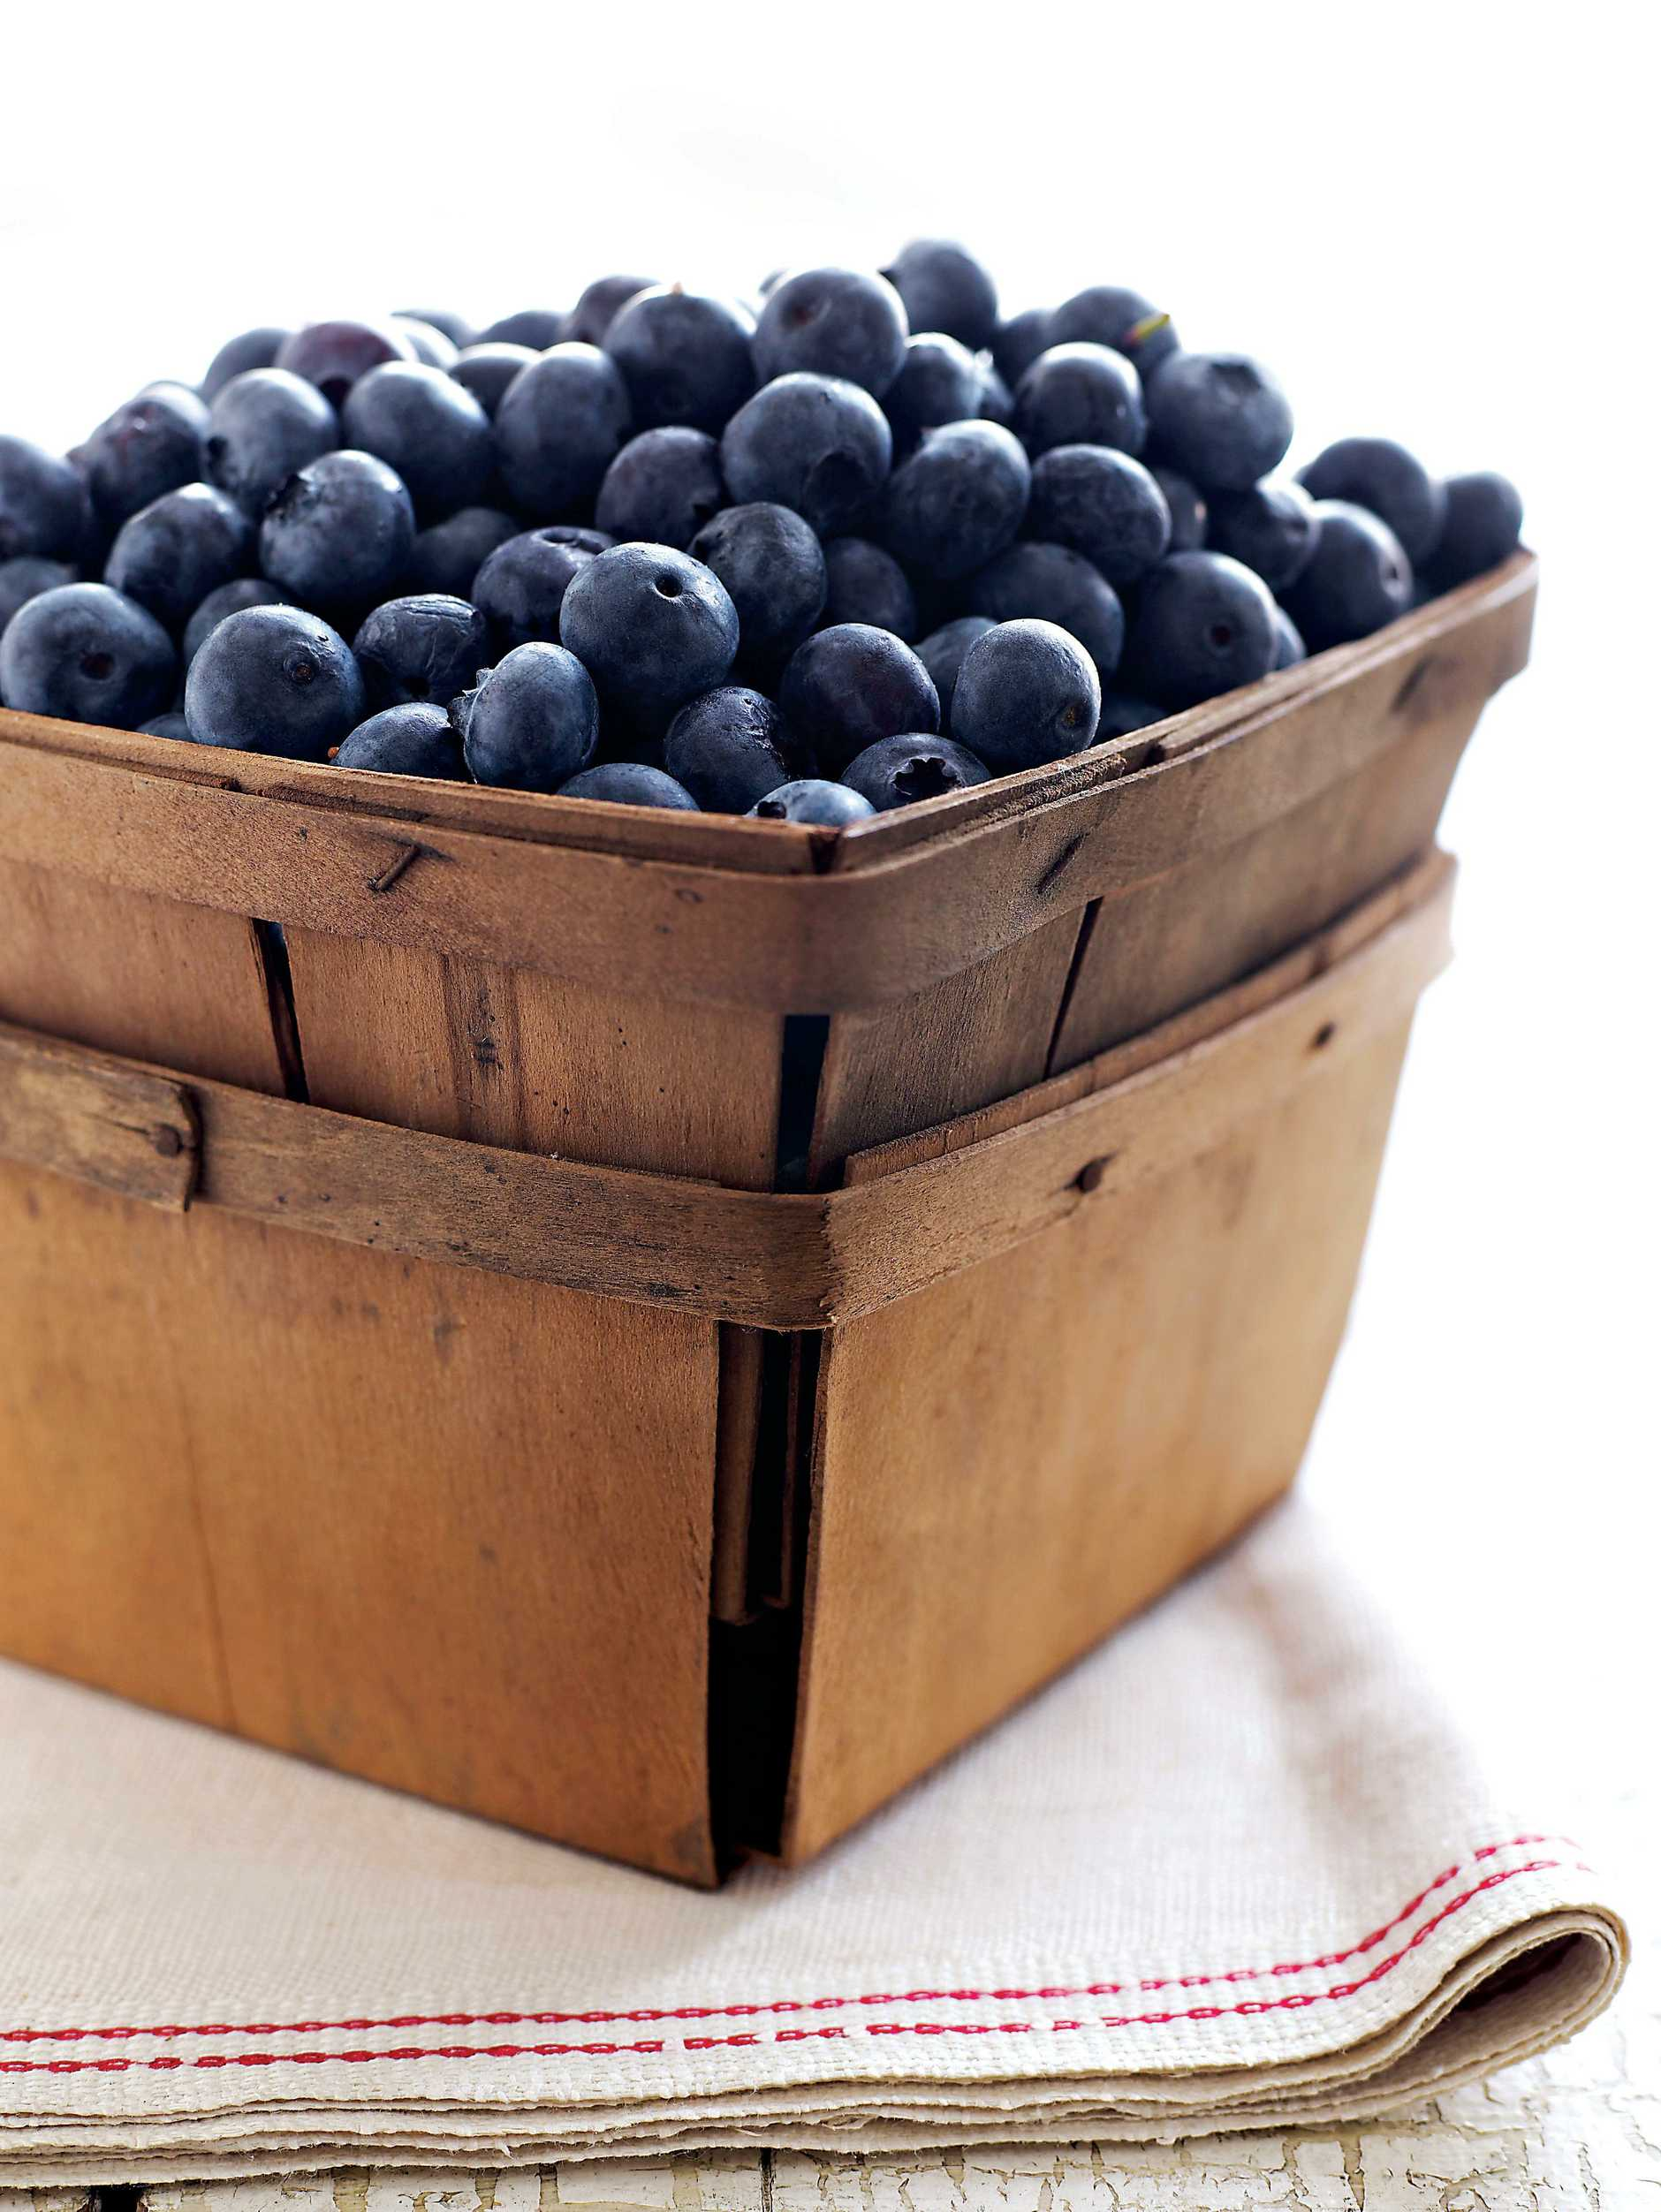 It's time to find a spot for a blueberry bush.